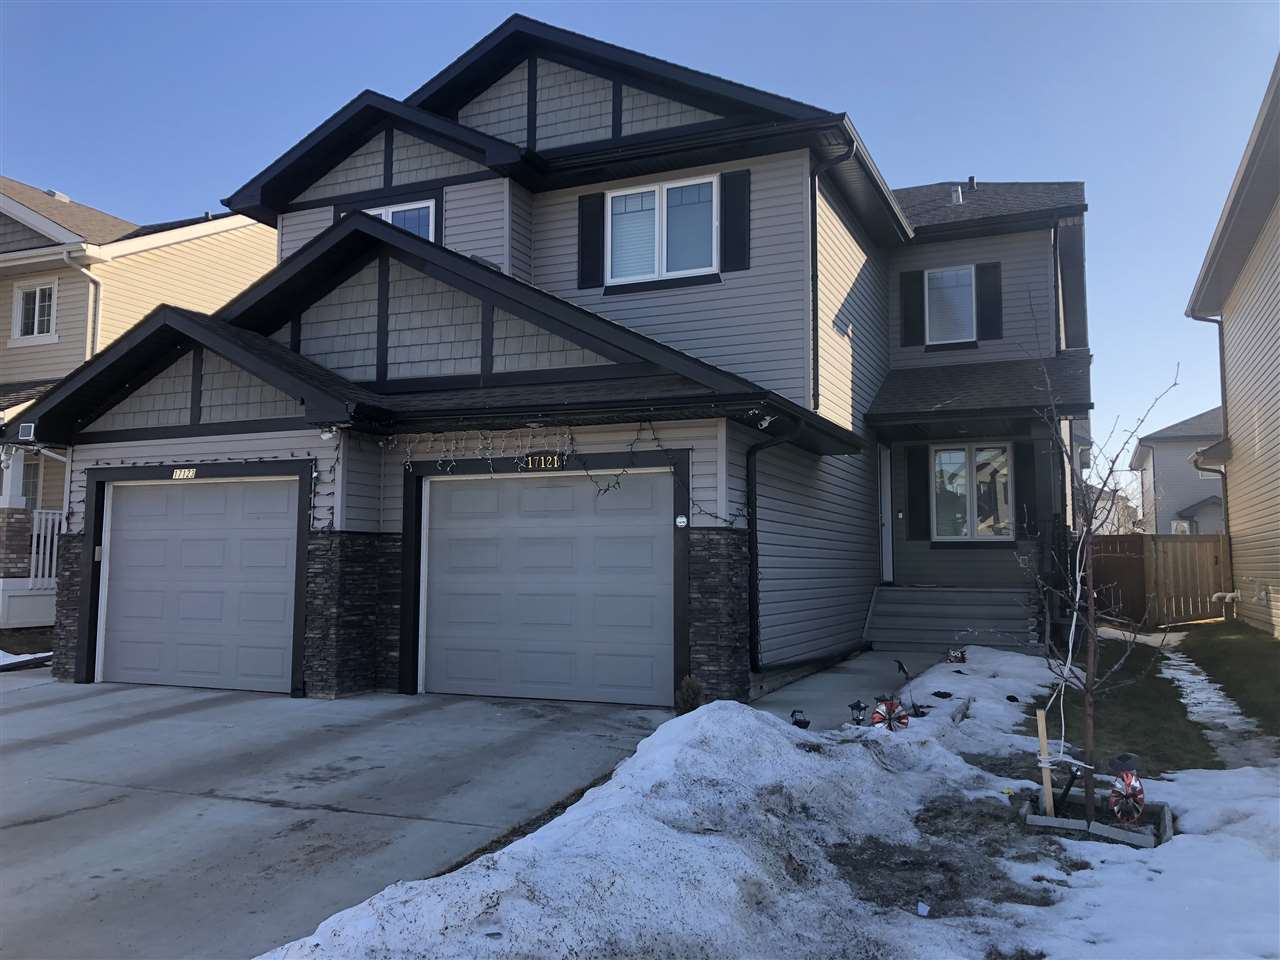 MLS® listing #E4148507 for sale located at 17121 126 Street